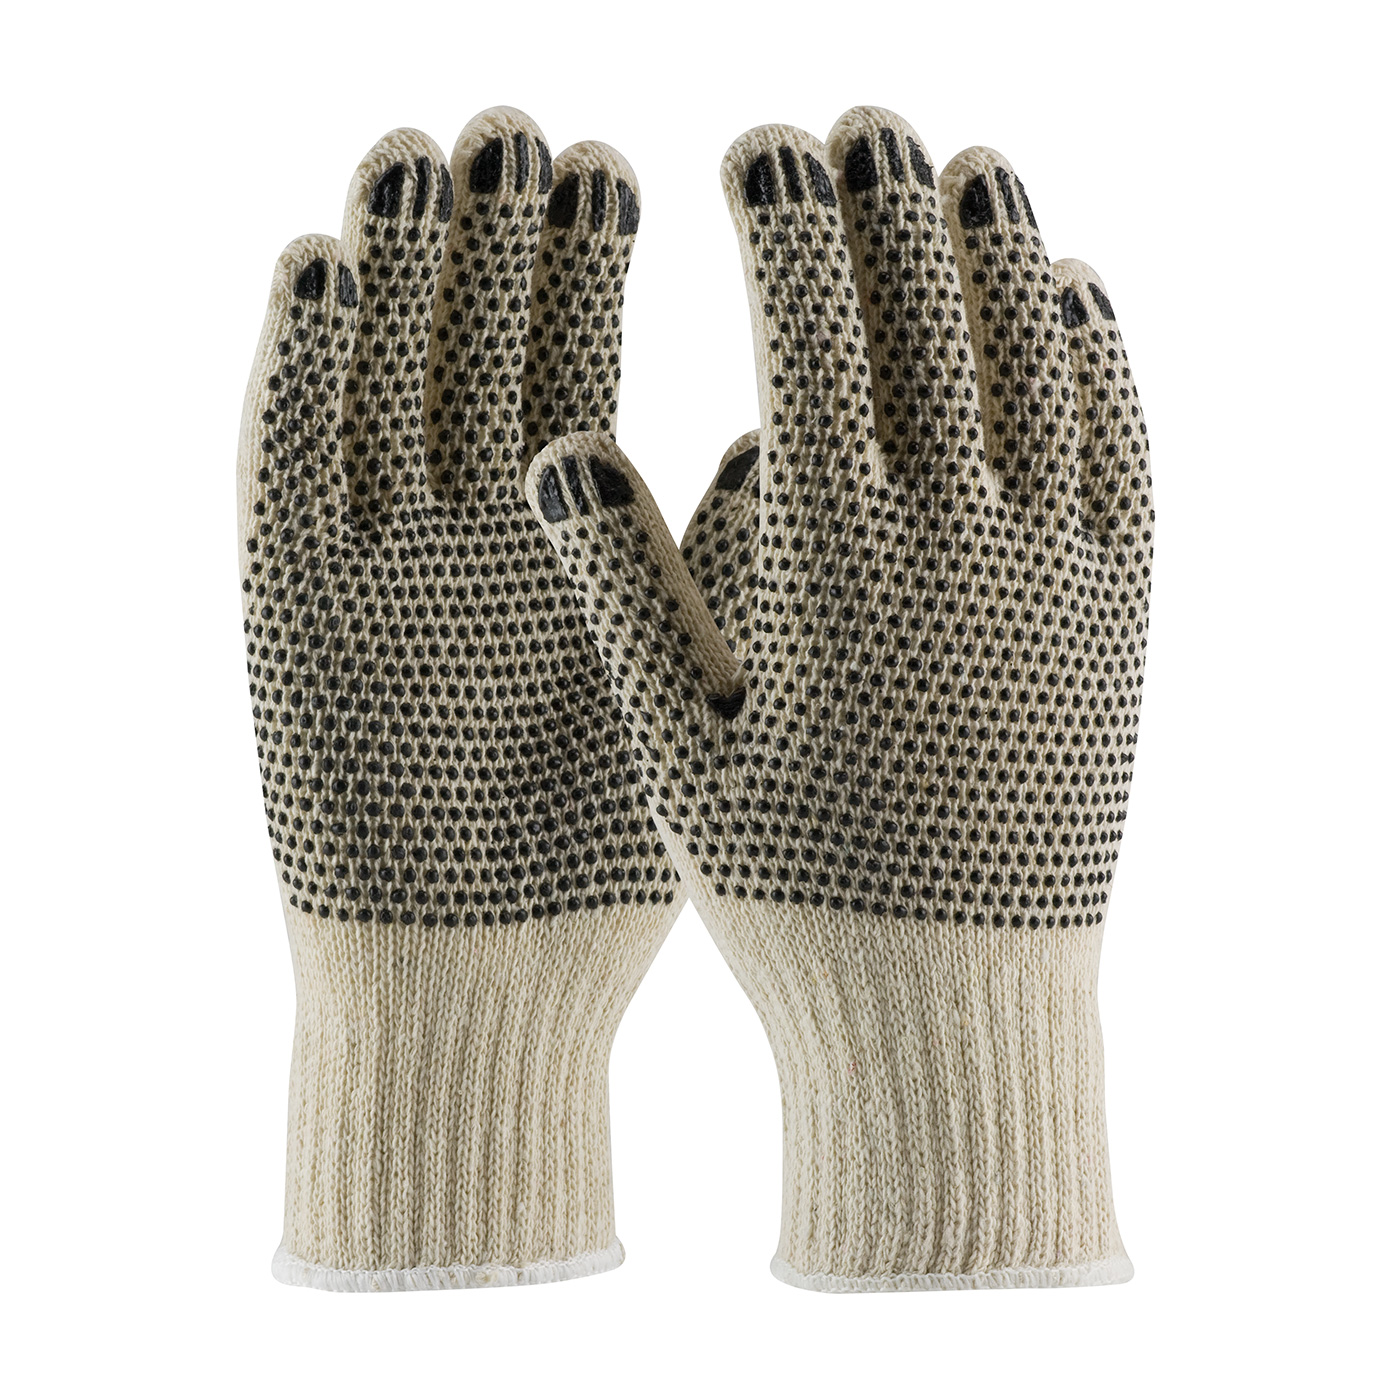 PIP® Seamless Knit Cotton / Polyester Glove with Double-Sided PVC Dot Grip - Regular Weight #36-110PDD